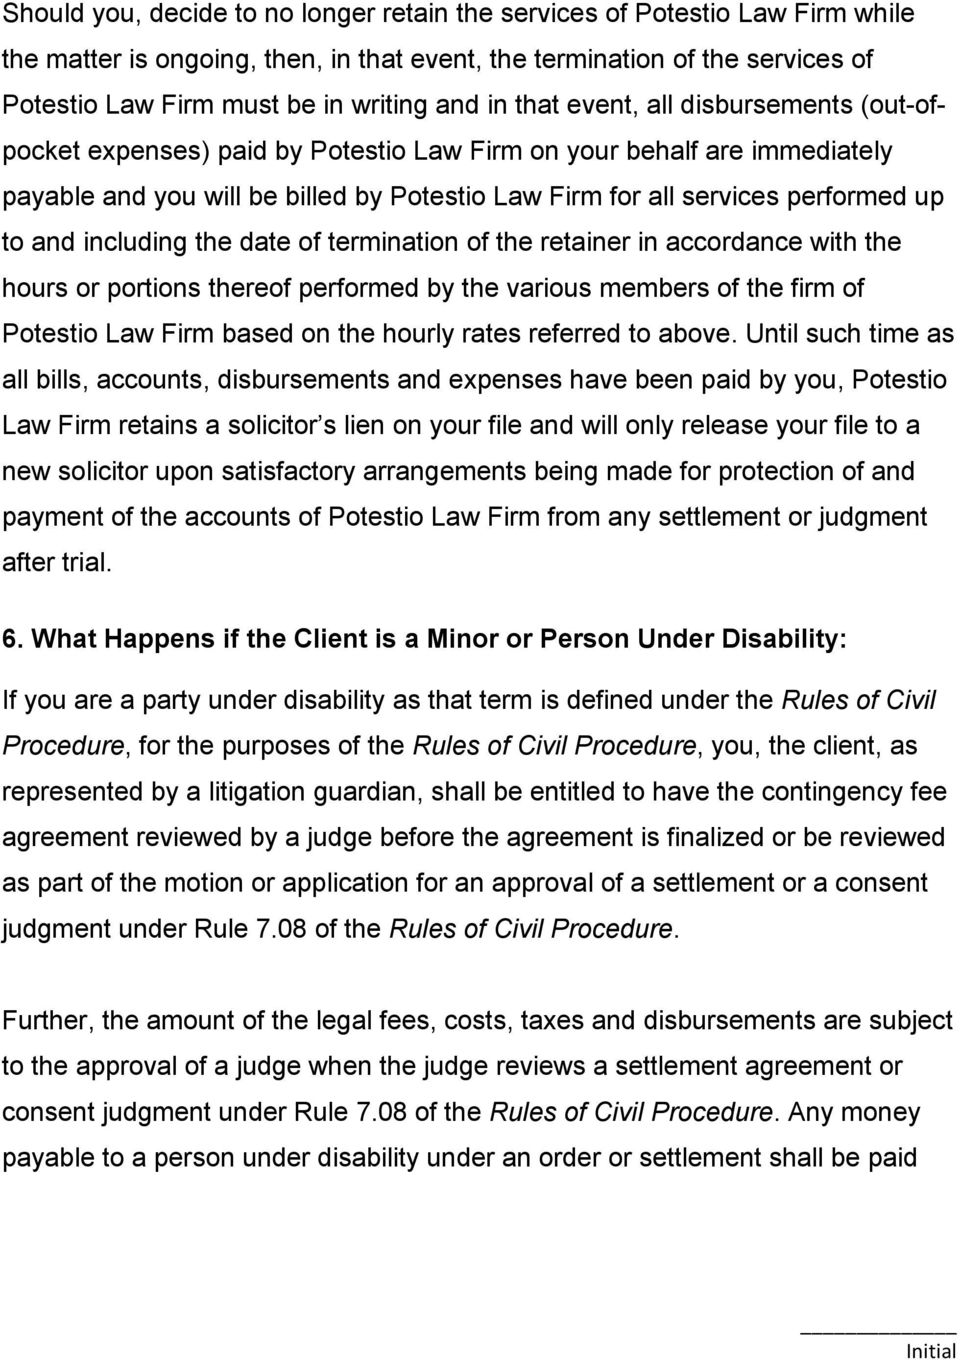 and including the date of termination of the retainer in accordance with the hours or portions thereof performed by the various members of the firm of Potestio Law Firm based on the hourly rates